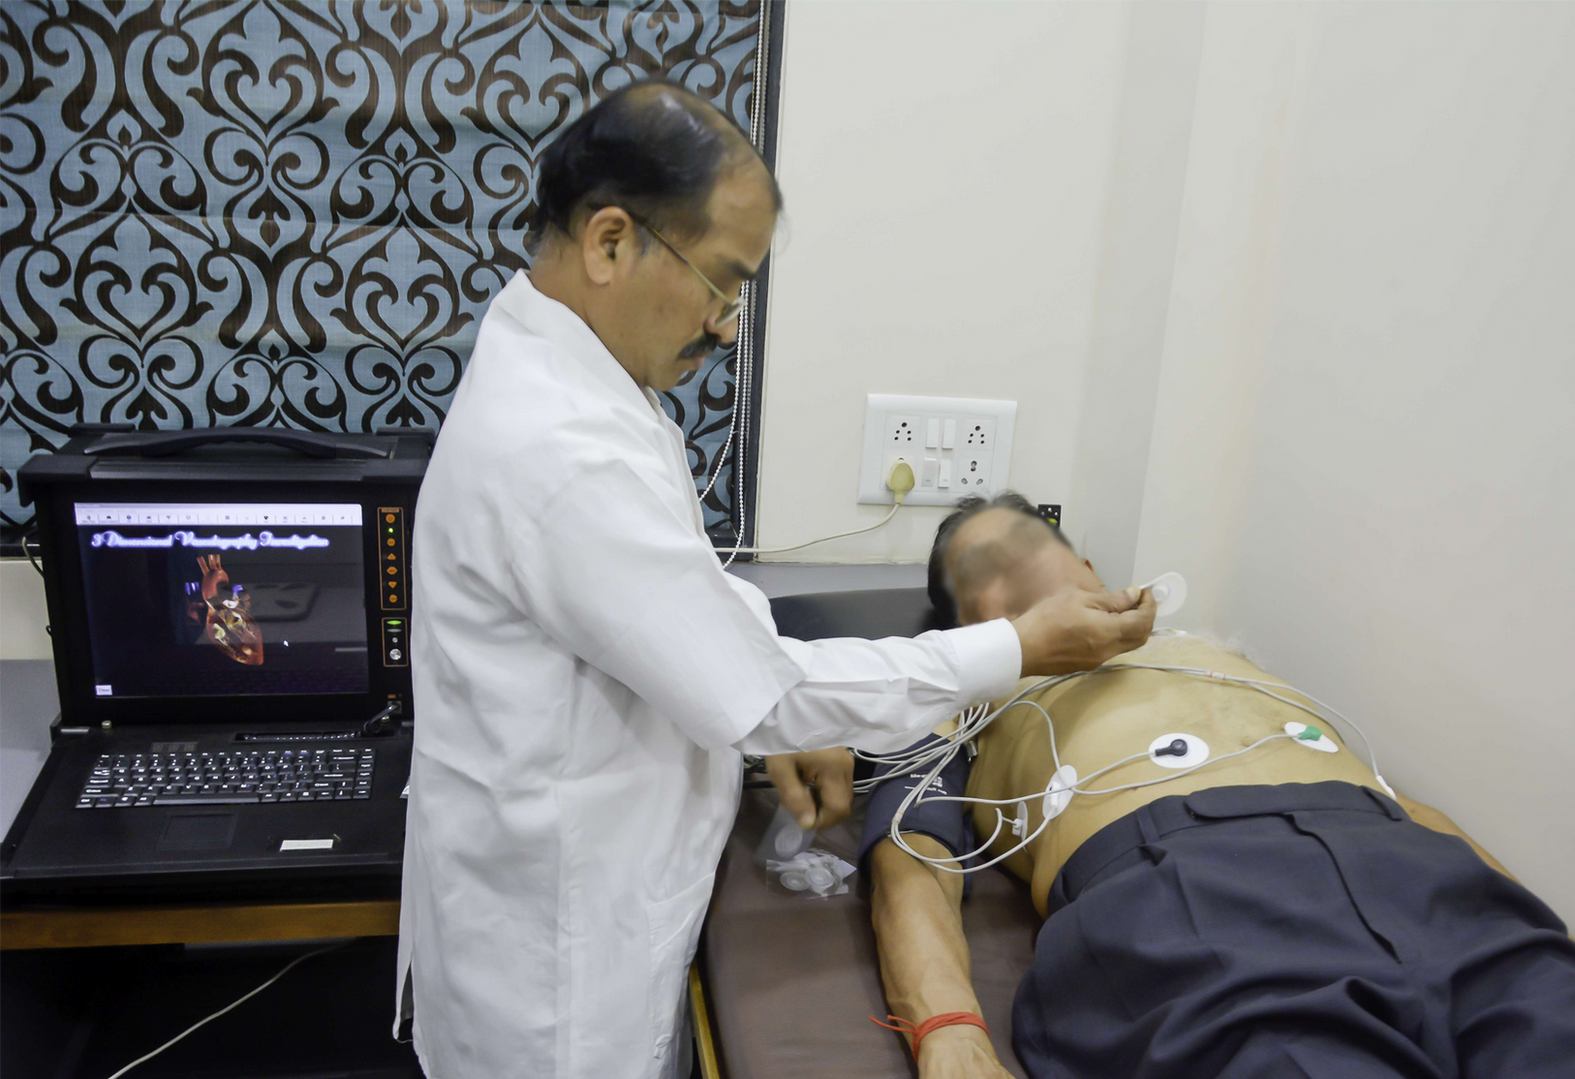 Preparing the patient for 3DCCG Cardiac Cartography